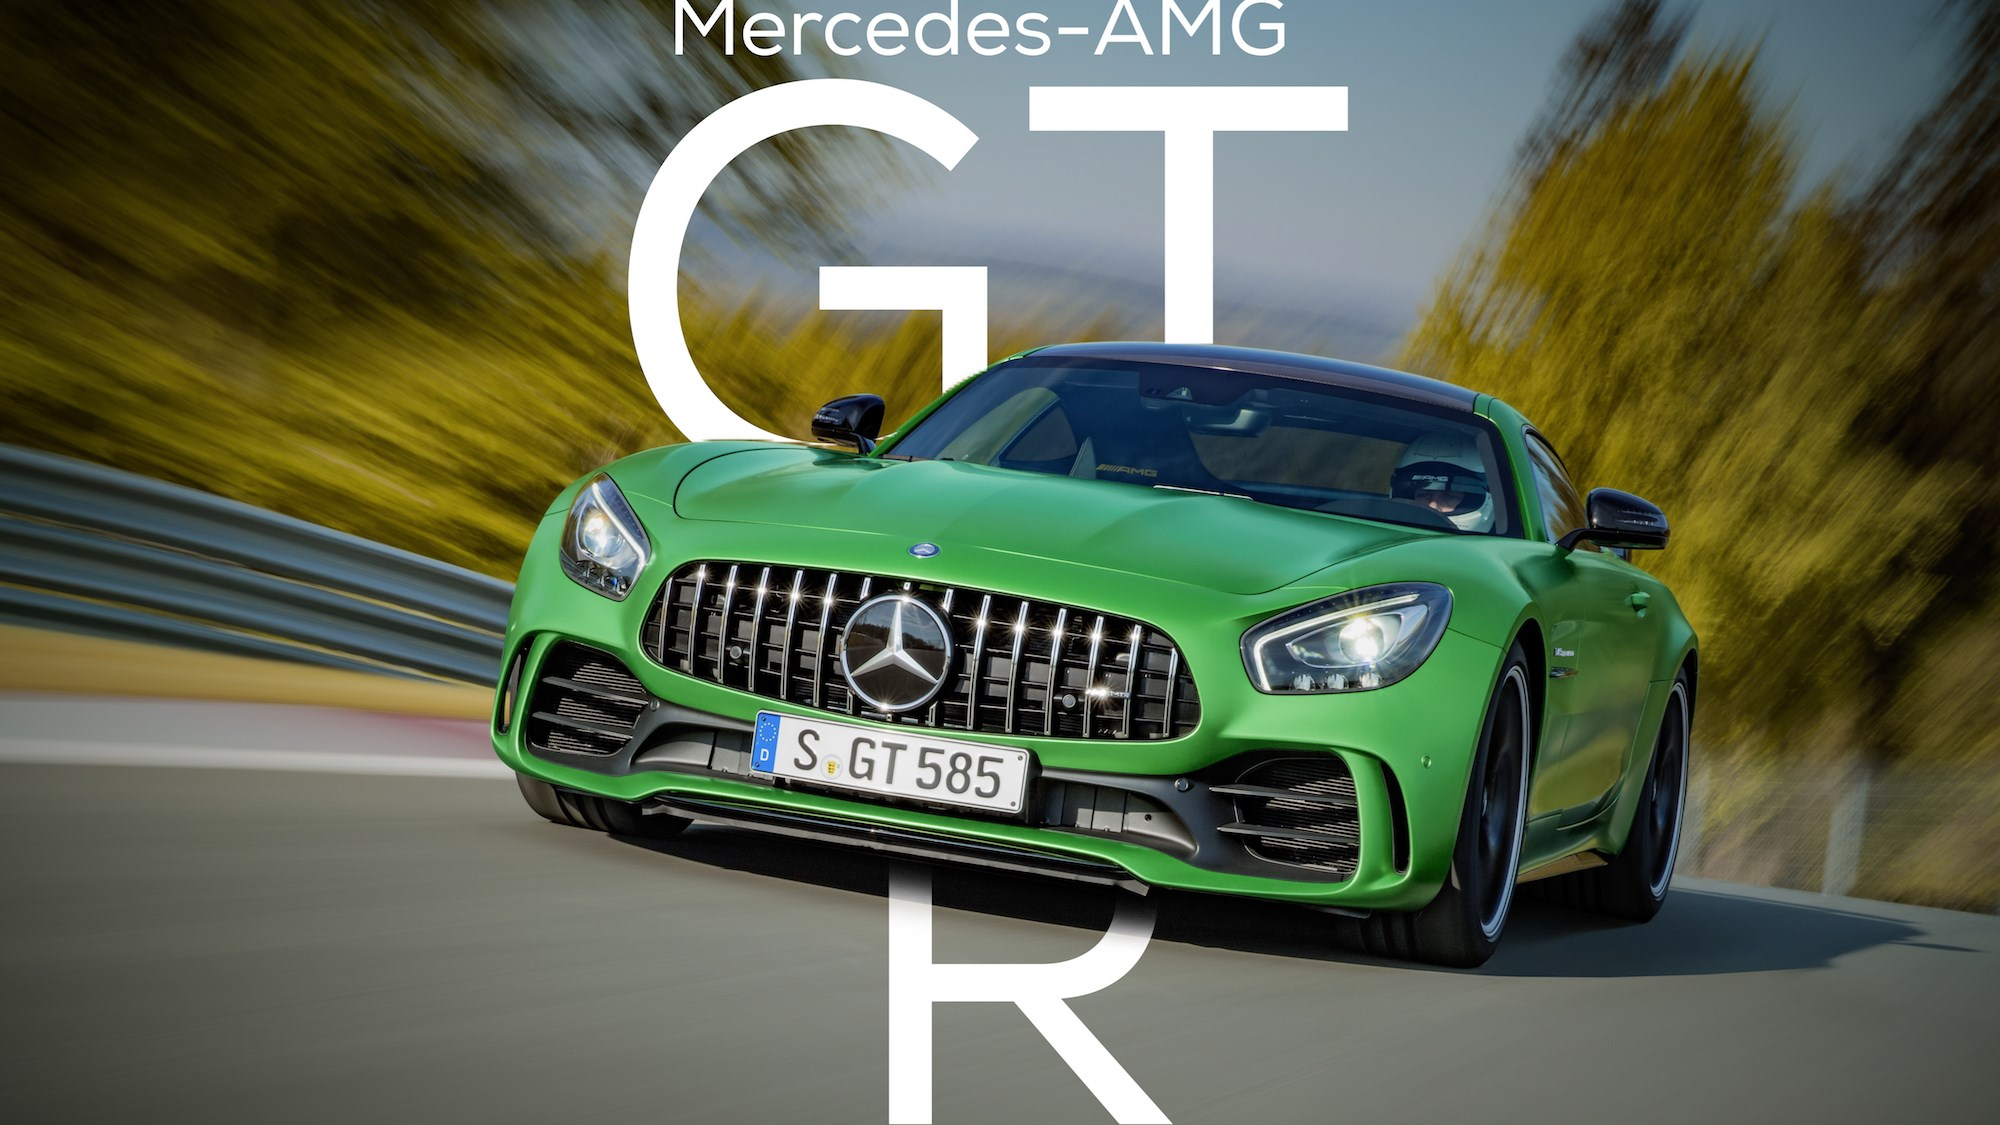 Mercedes-AMG GT R Gets Full Debut At Goodwood